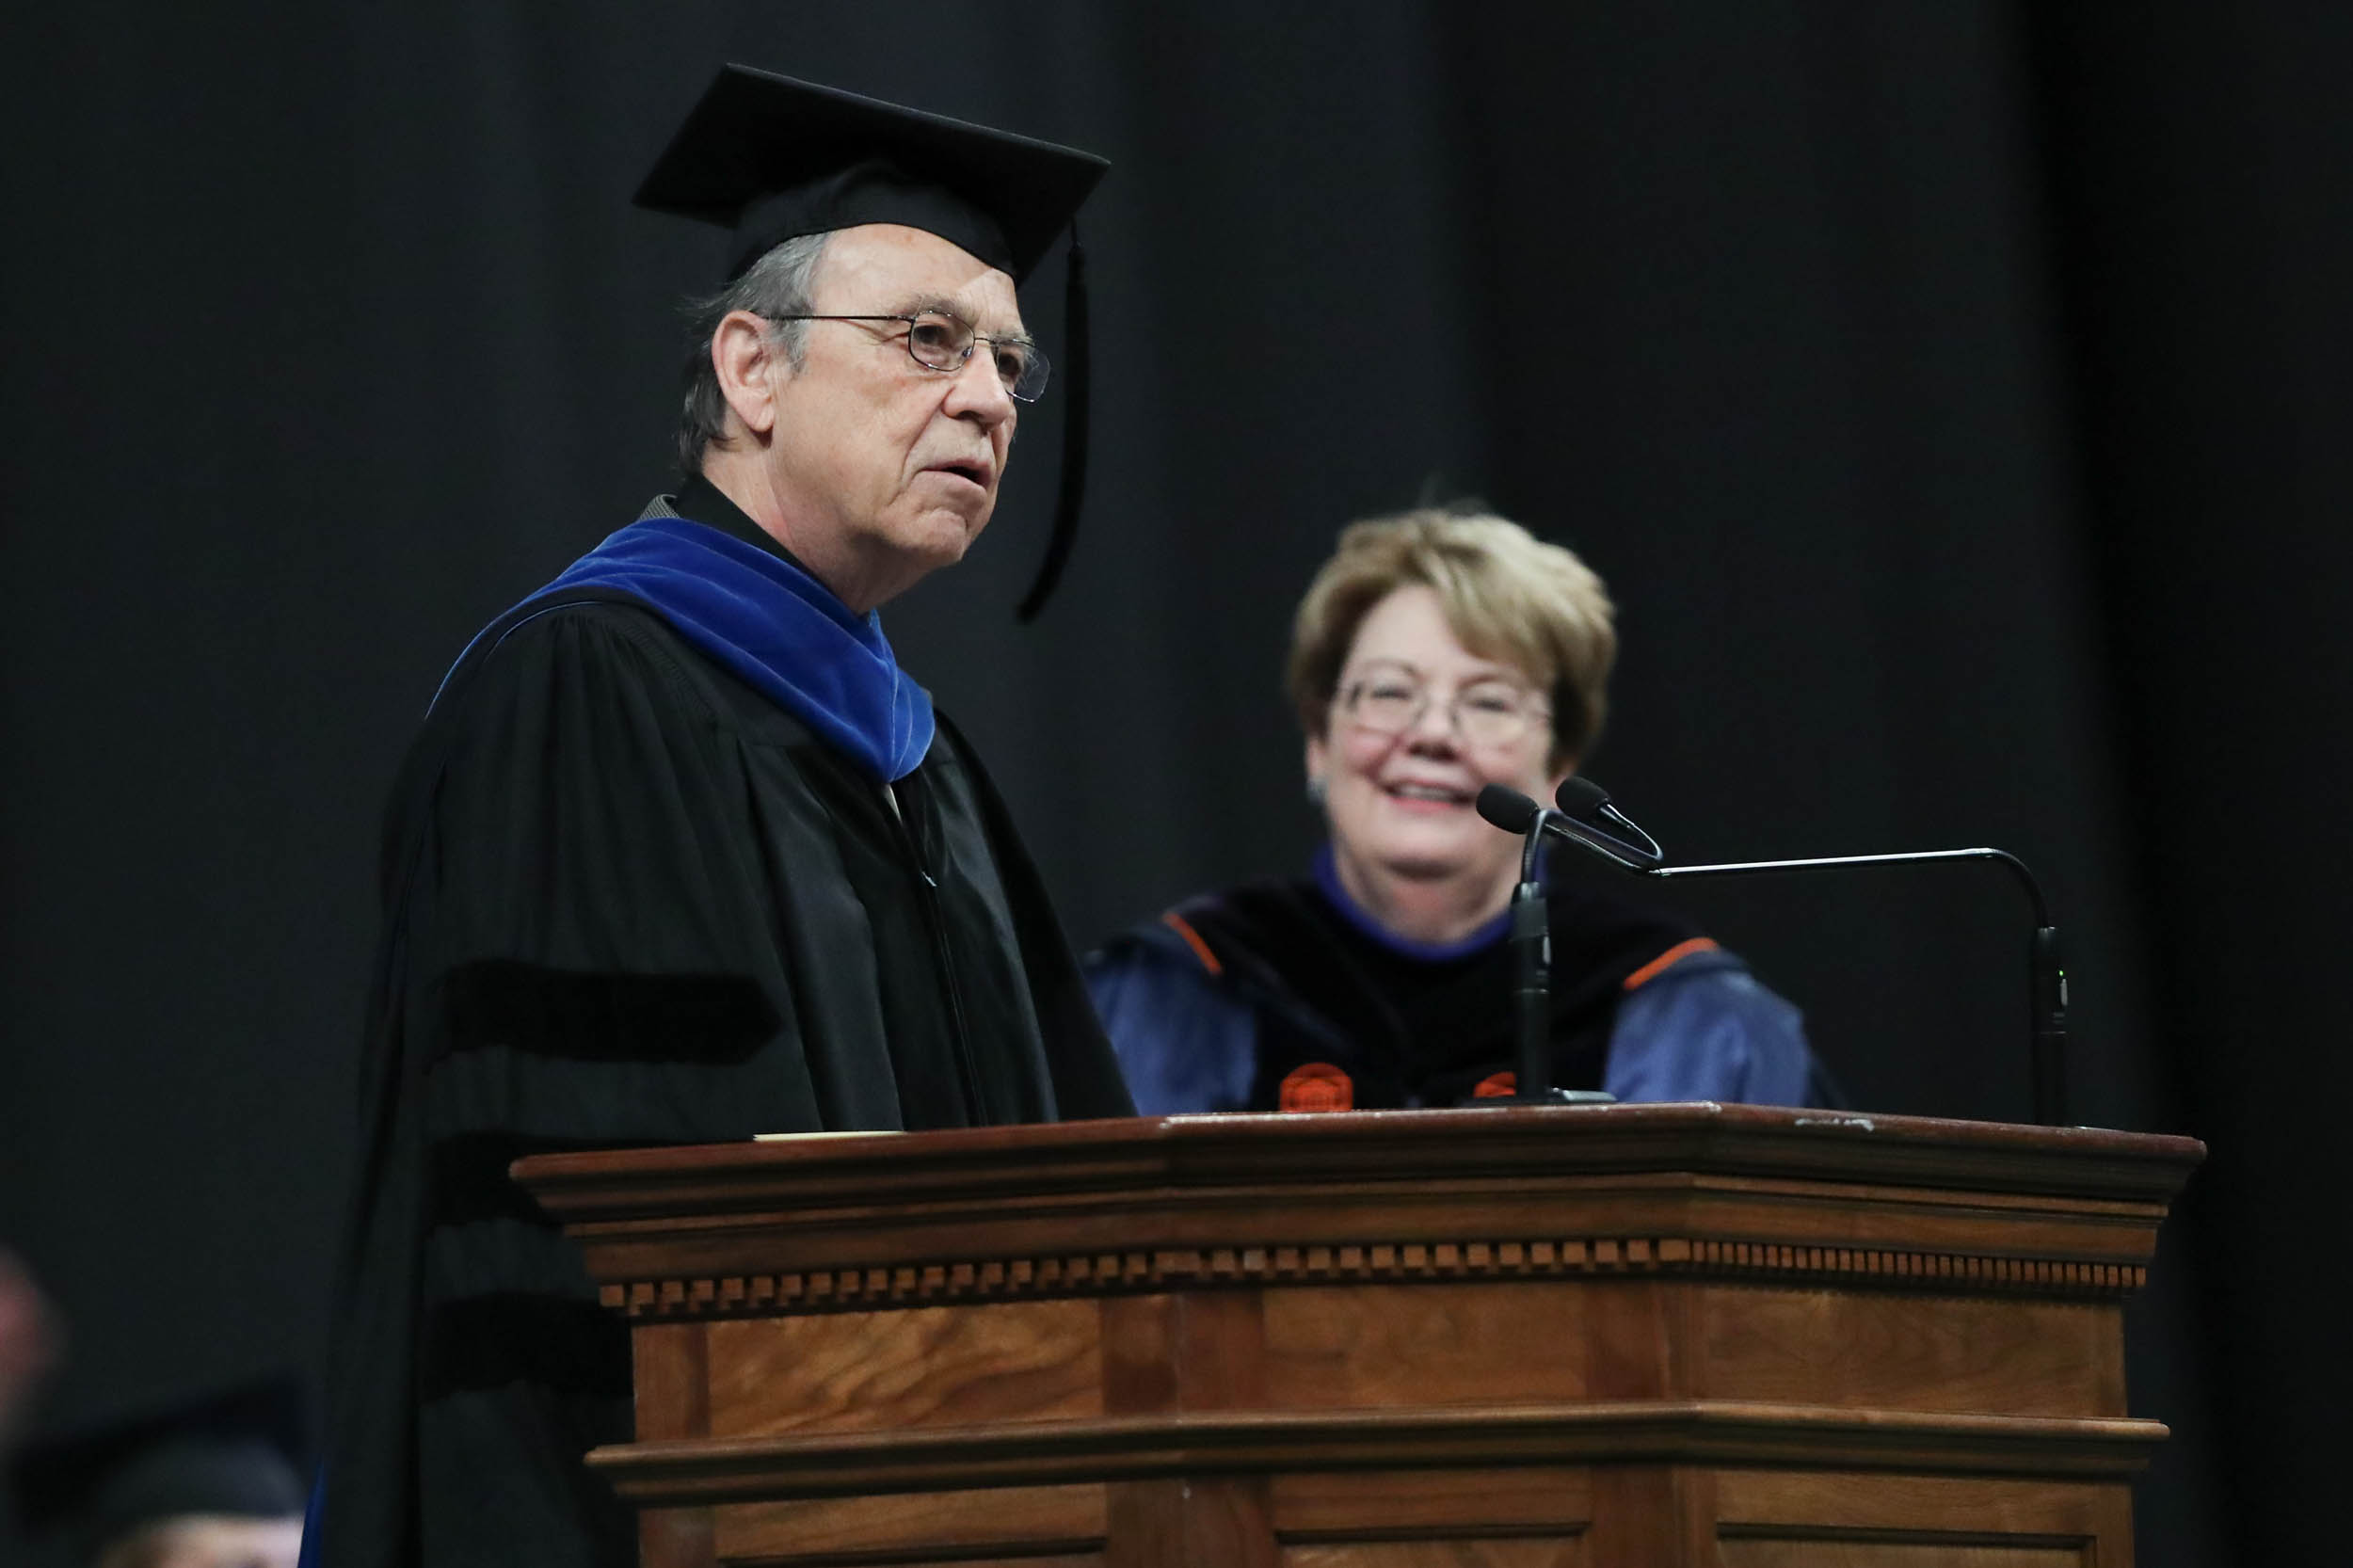 Jerome McGann, winner of the Thomas Jefferson Award for Scholarship, accepted the honor on behalf of his colleagues.